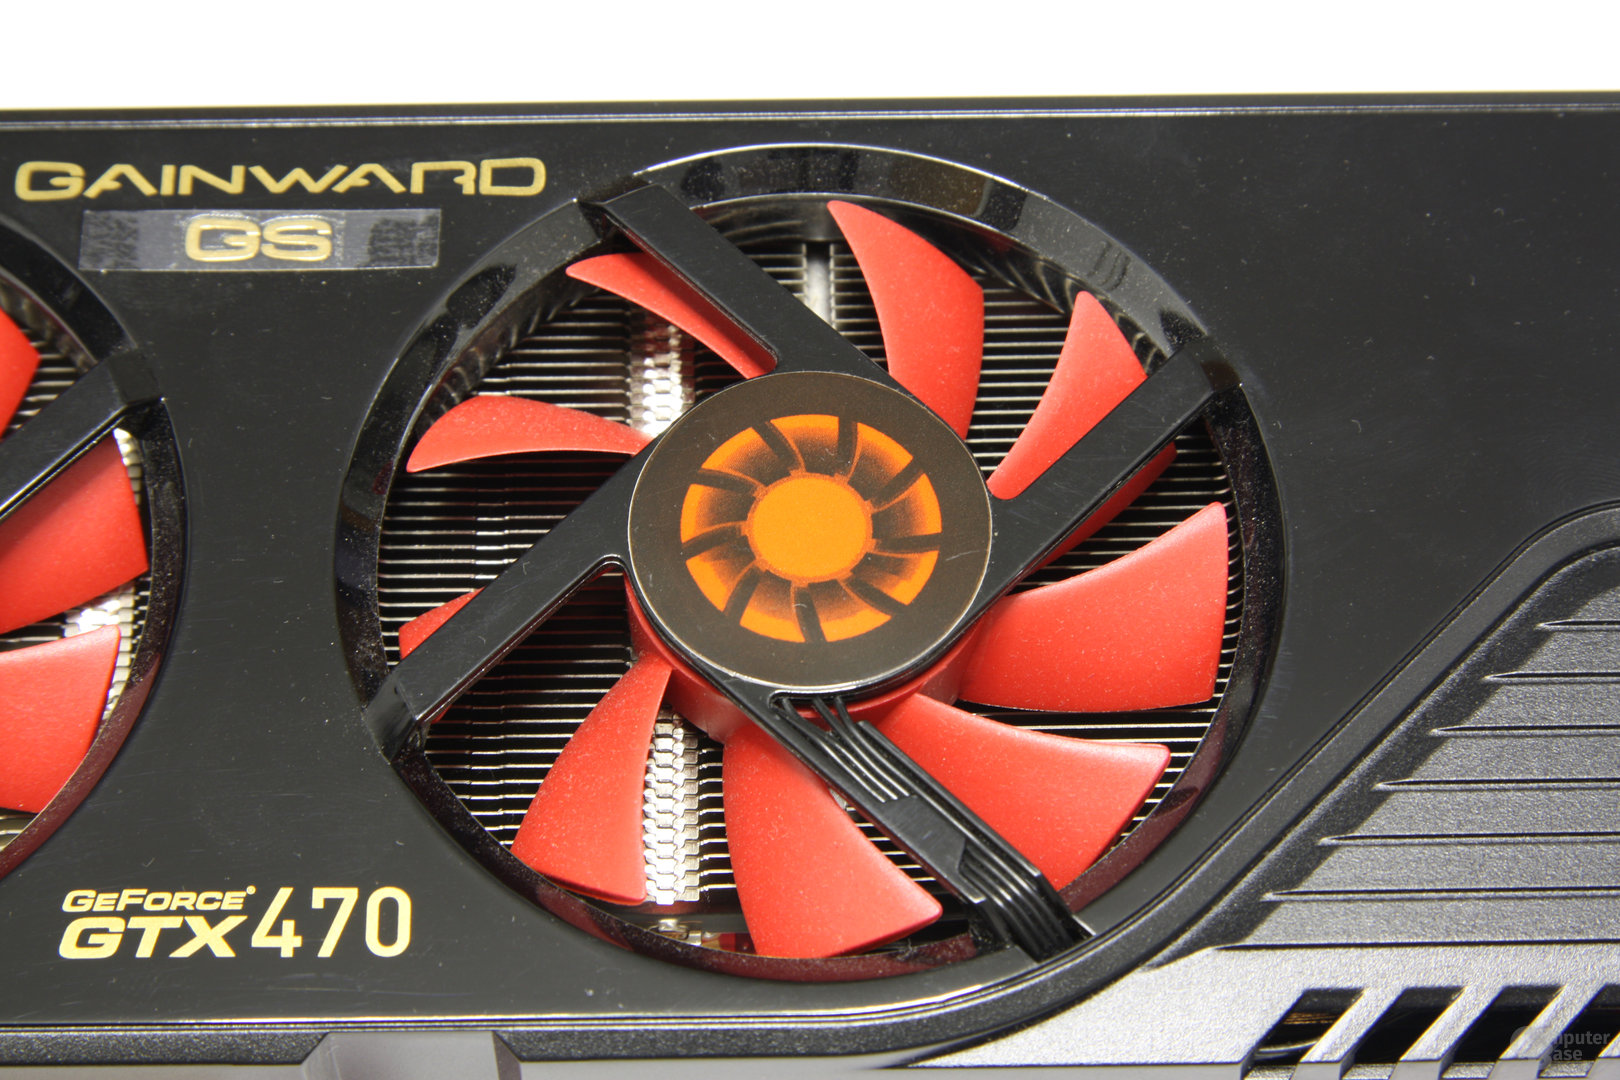 GeForce GTX 470 GS Lüfter